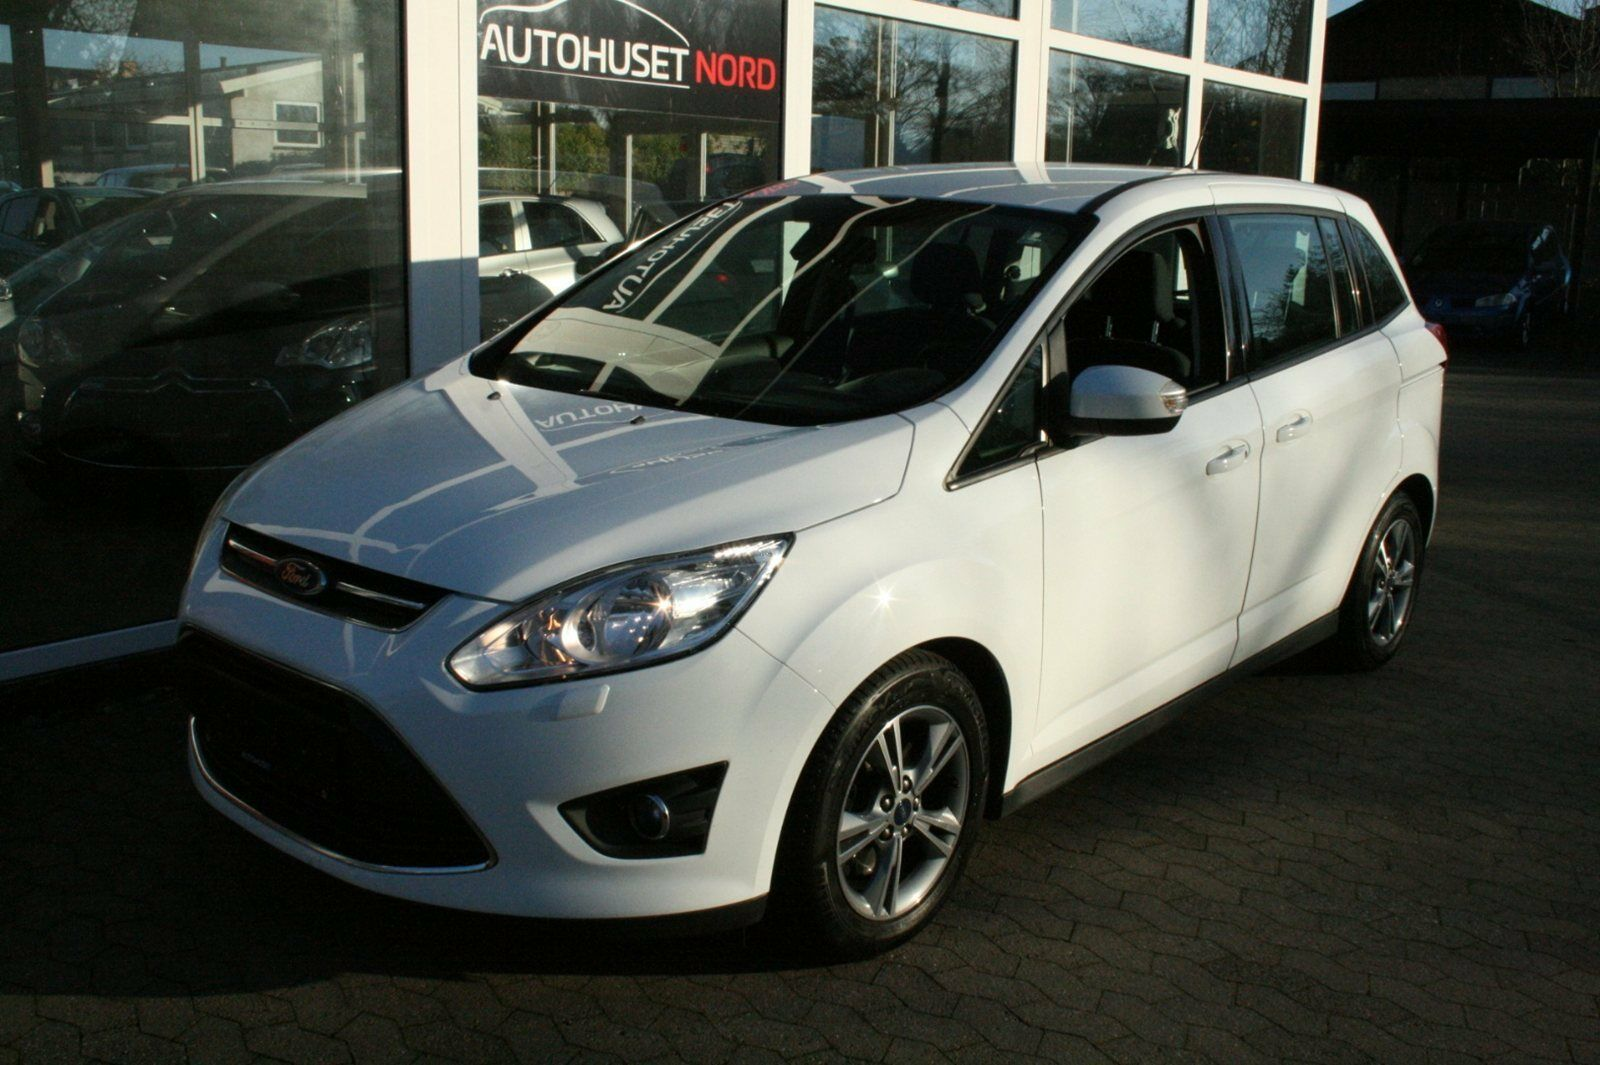 Ford Grand C-MAX 1,6 TDCi 115 Edition 5d